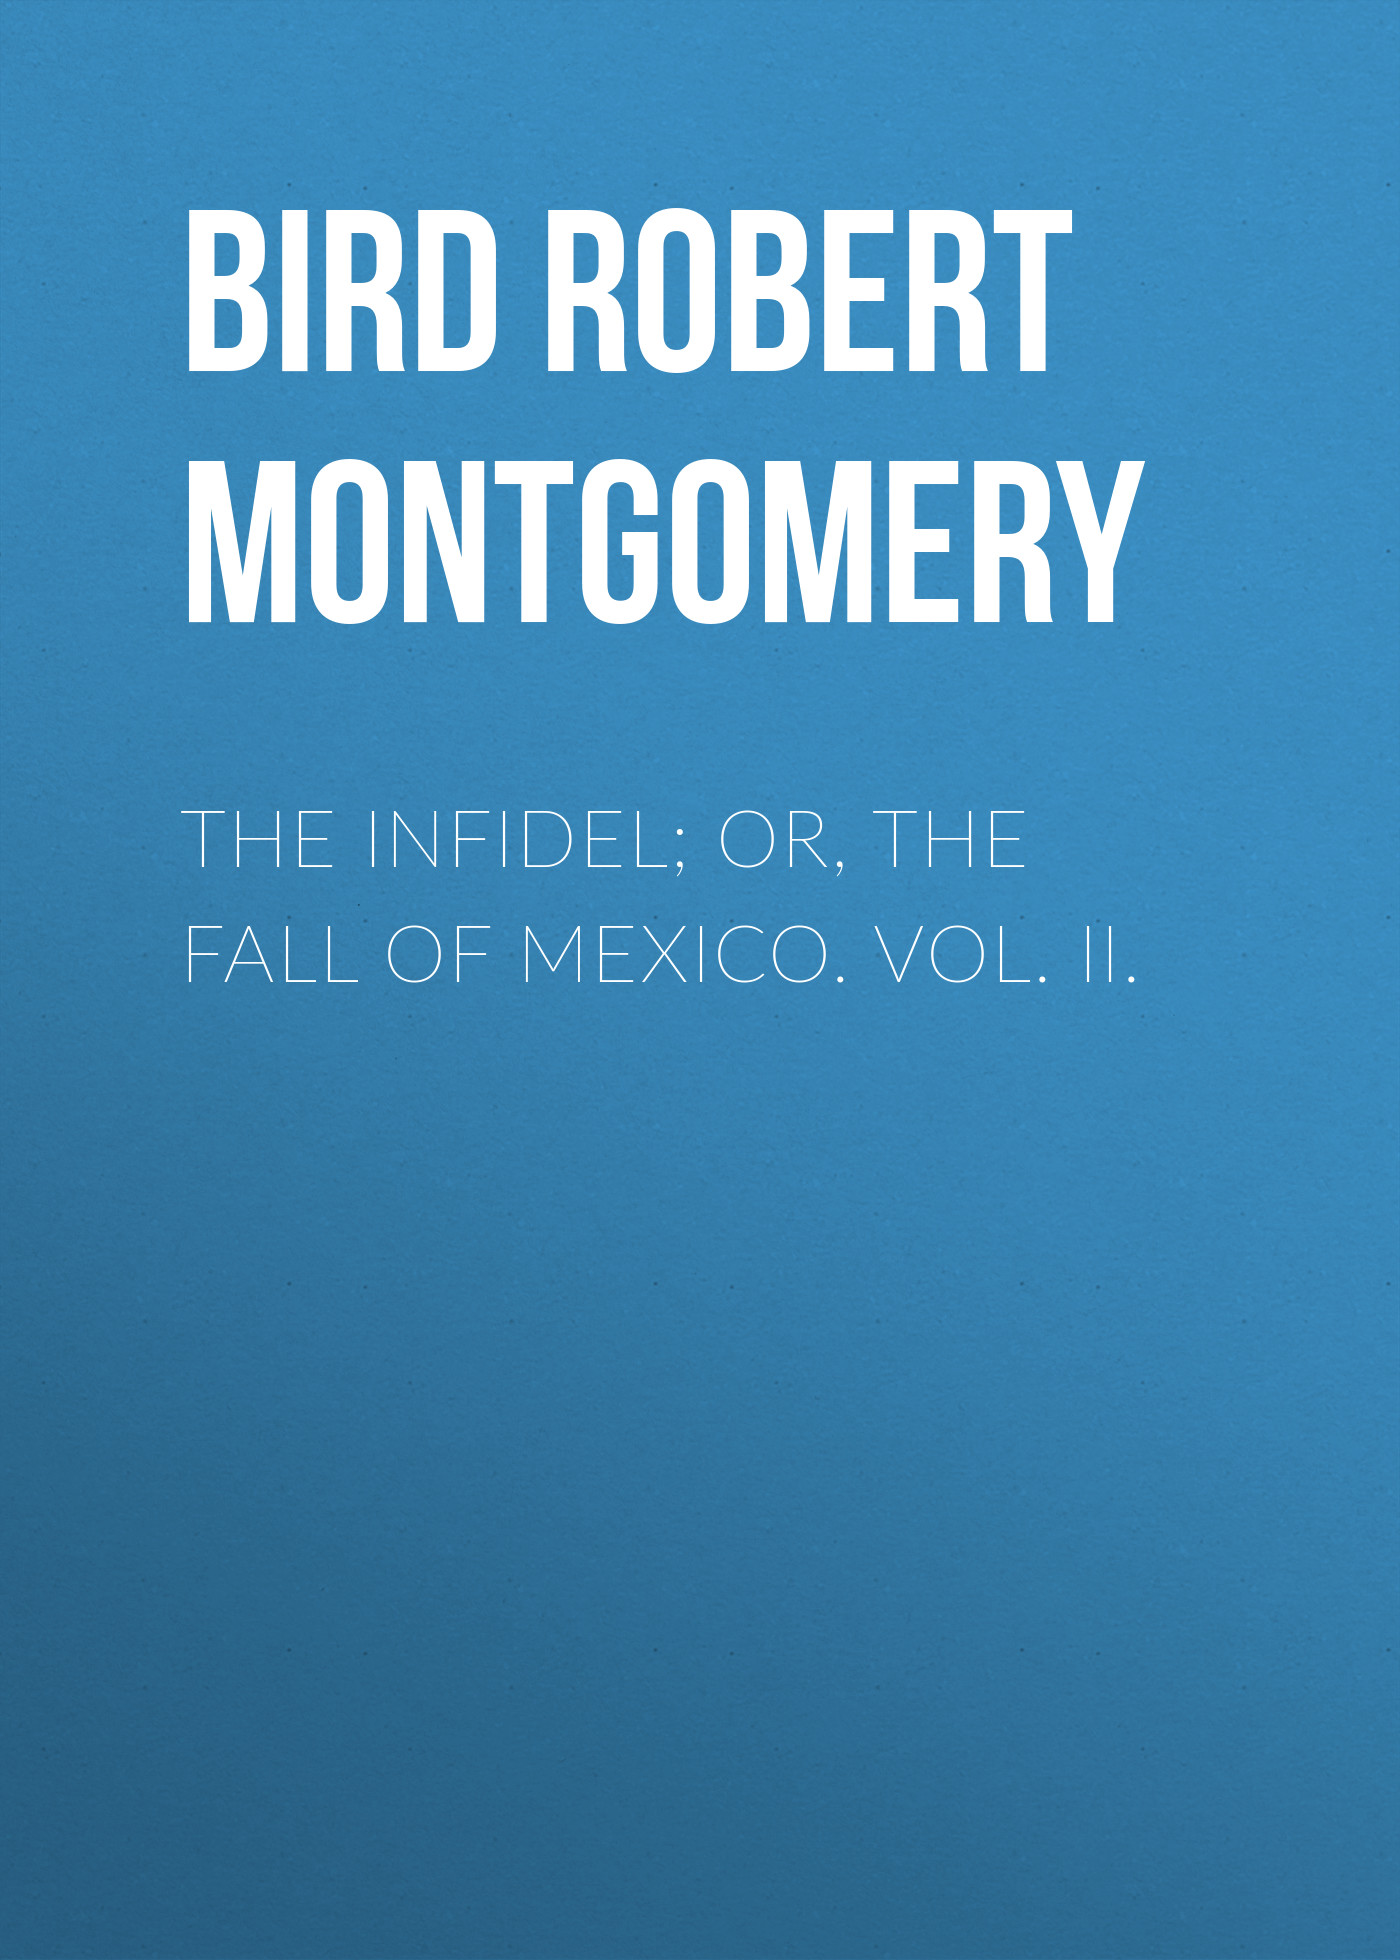 Bird Robert Montgomery The Infidel; or, the Fall of Mexico. Vol. II. bird robert montgomery sheppard lee written by himself vol i of 2